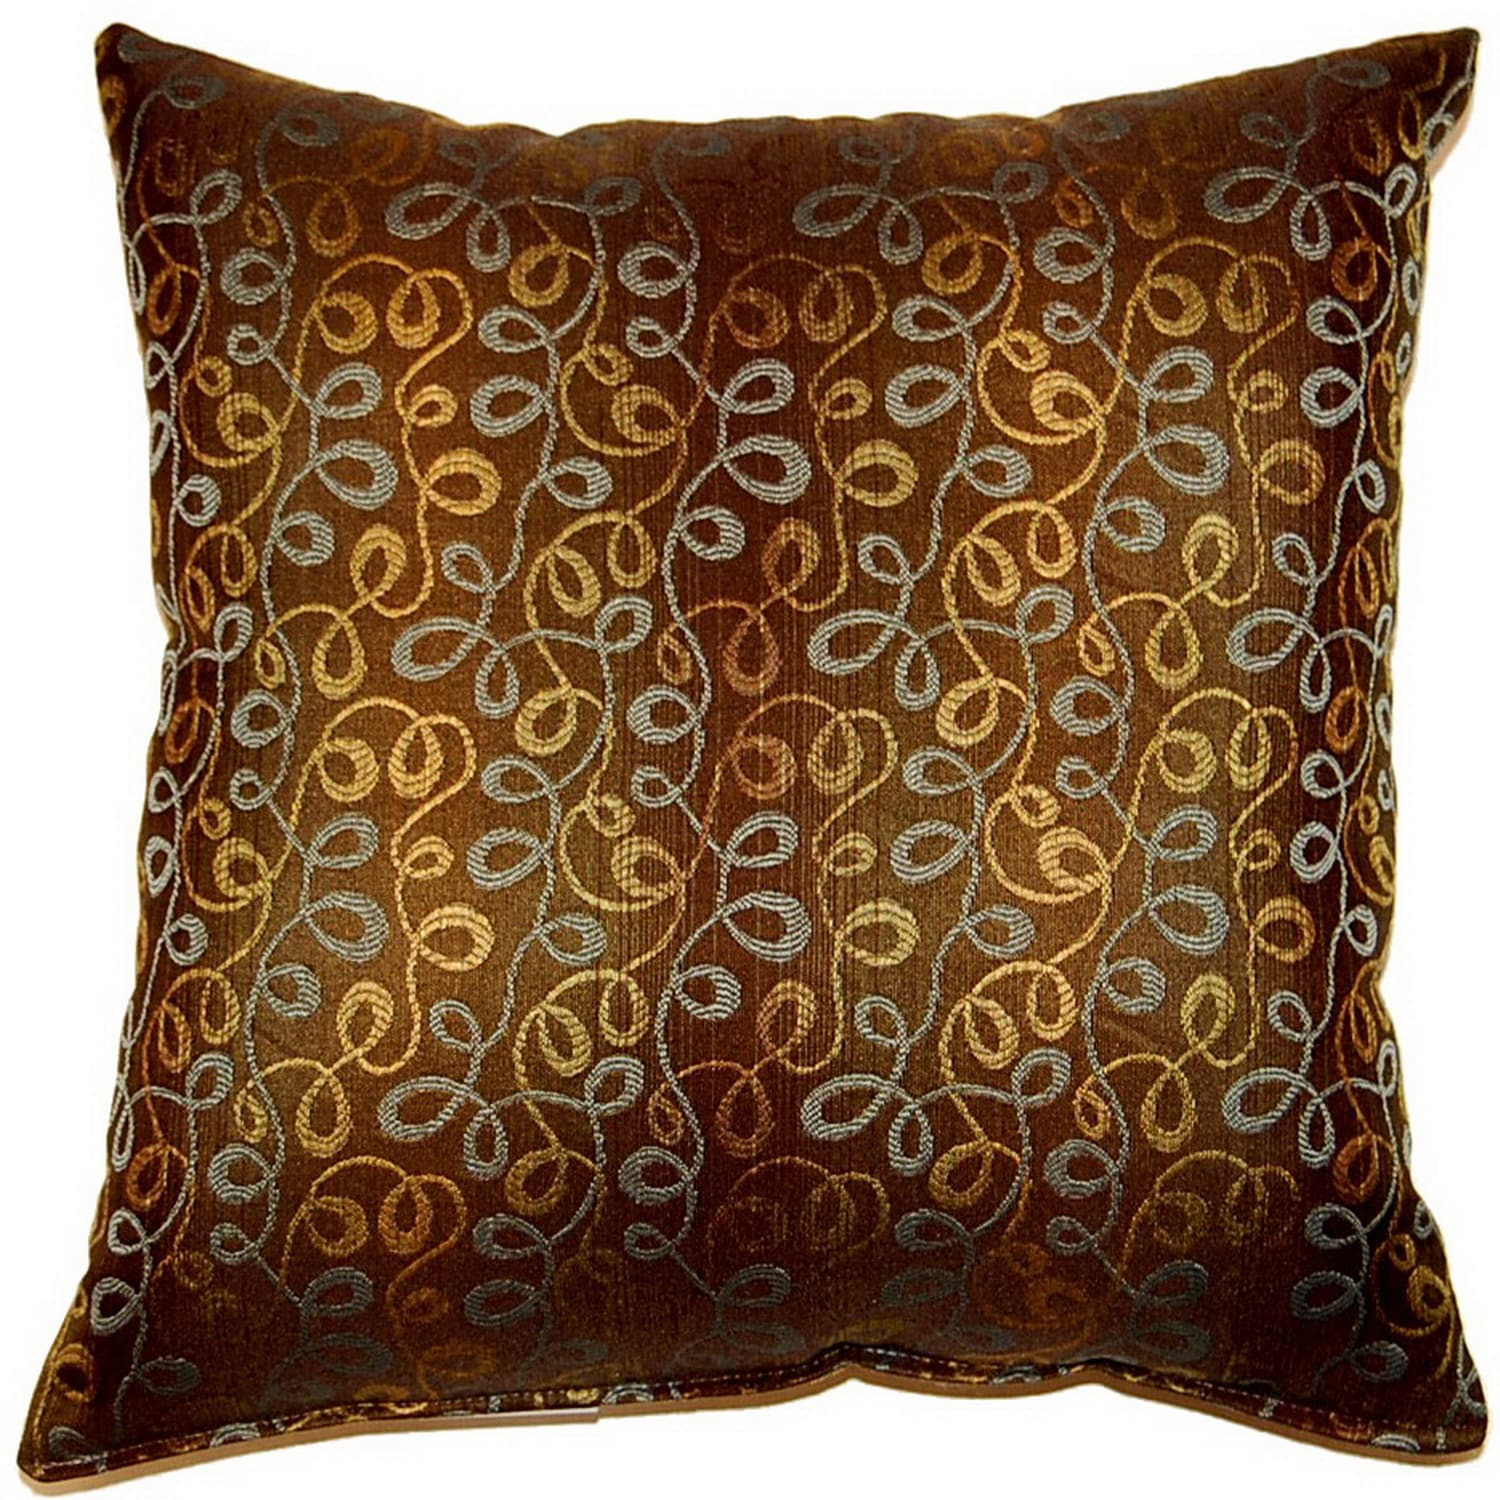 Fox Hill Trading Doodle Vermouth 17-inch Throw Pillows (Set of 2)